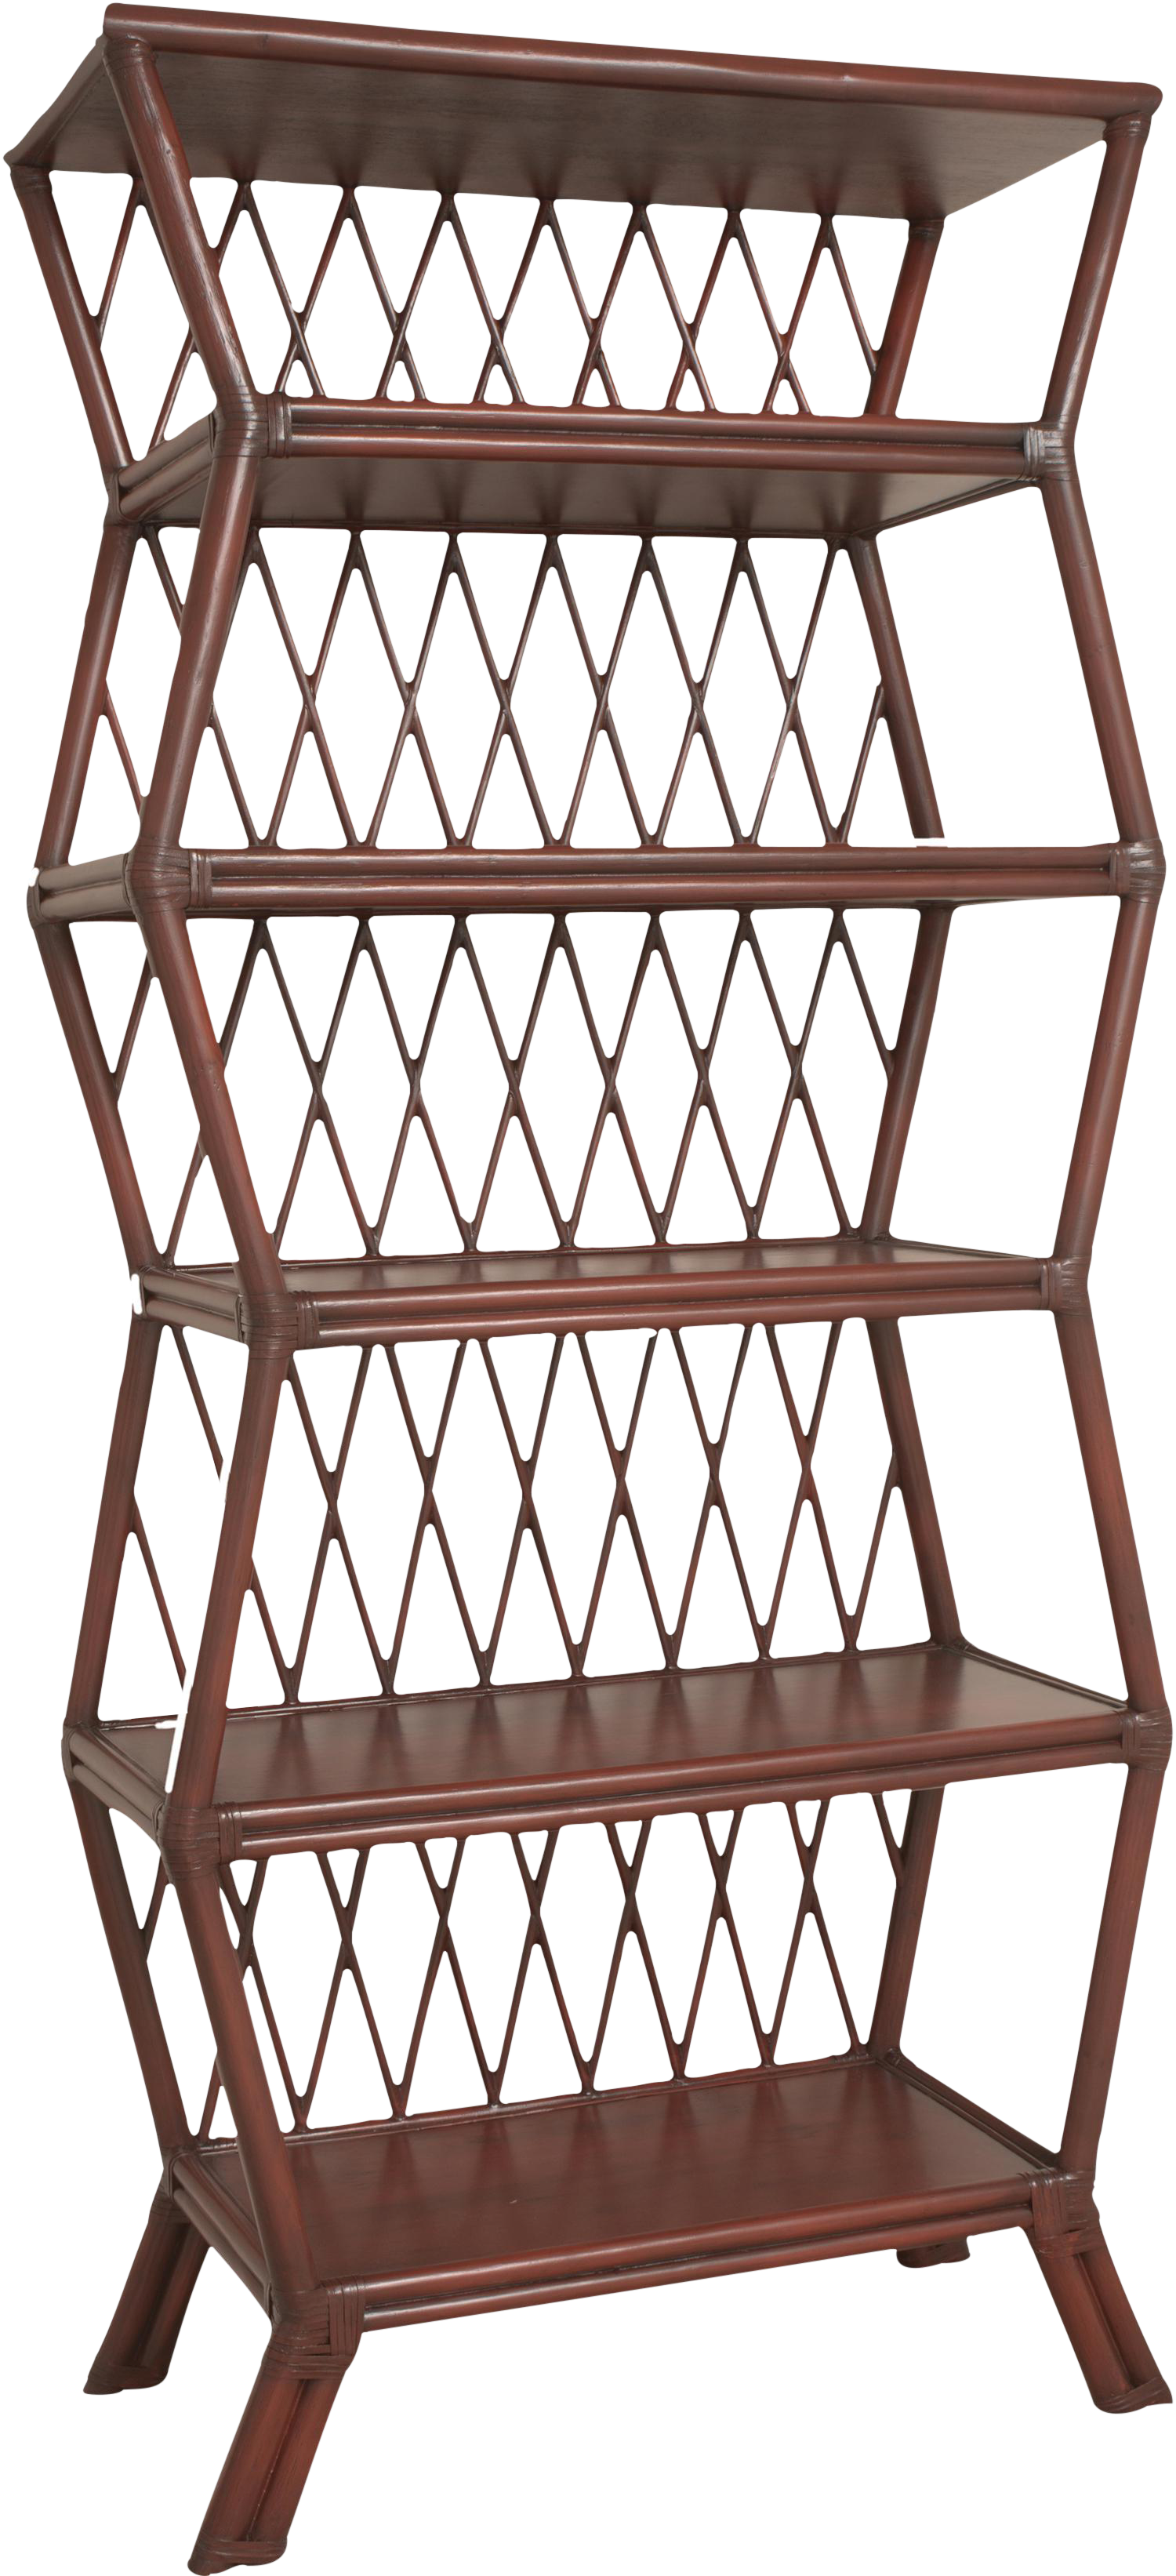 david francis furniture aged chinese red etagere  chairish - image of david francis furniture aged chinese red etagere